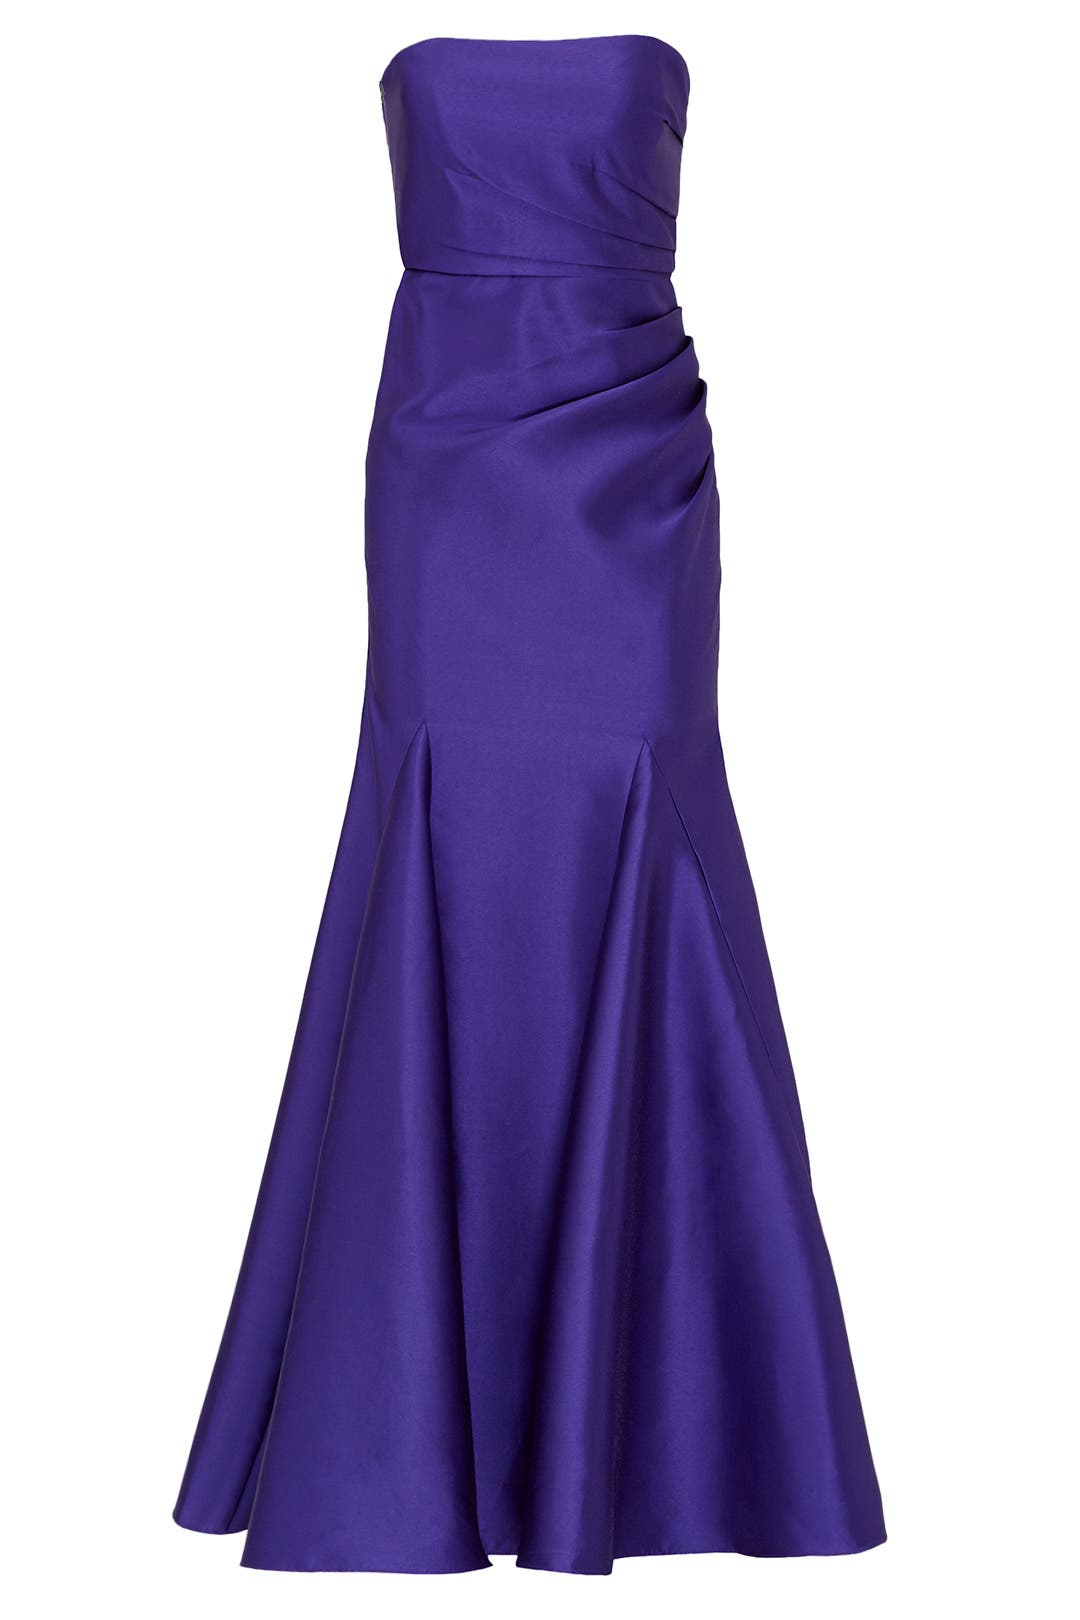 Party All Night Gown by Badgley Mischka for $90 | Rent the Runway